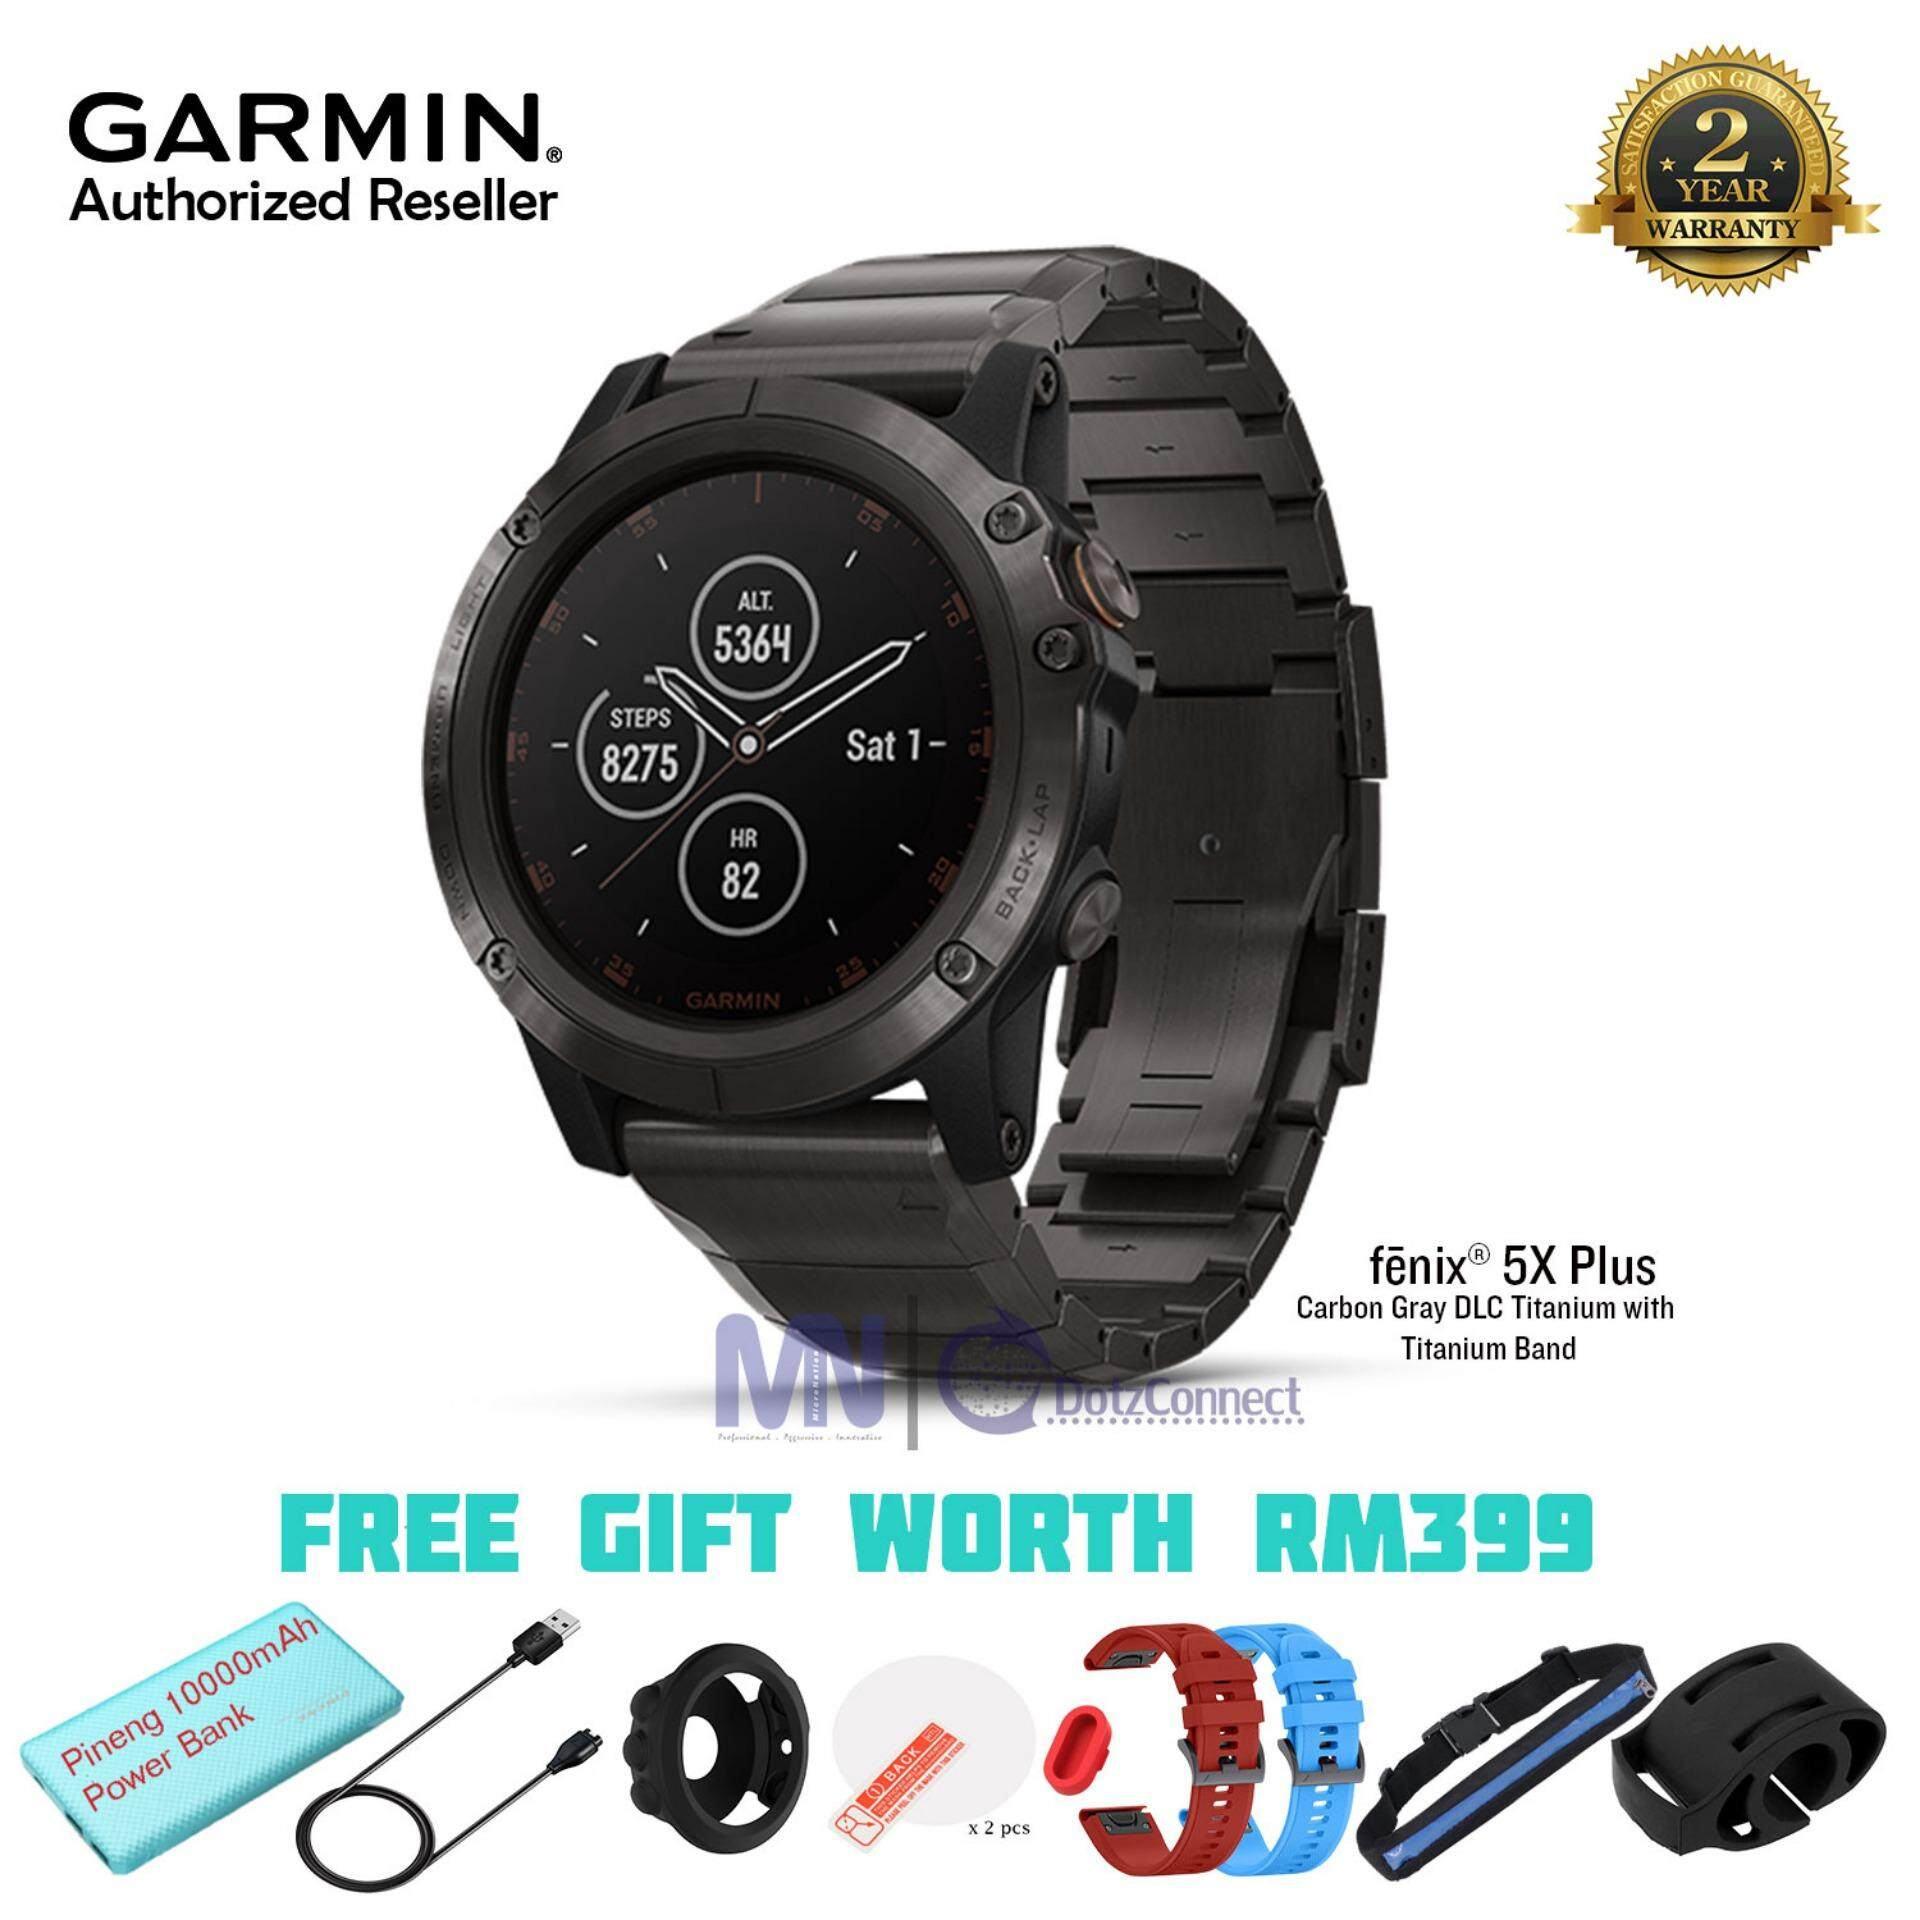 Garmin Fenix 5X Plus Gray DLC Titanium with Titanium Band Multisport GPS Watch With Maps, Music